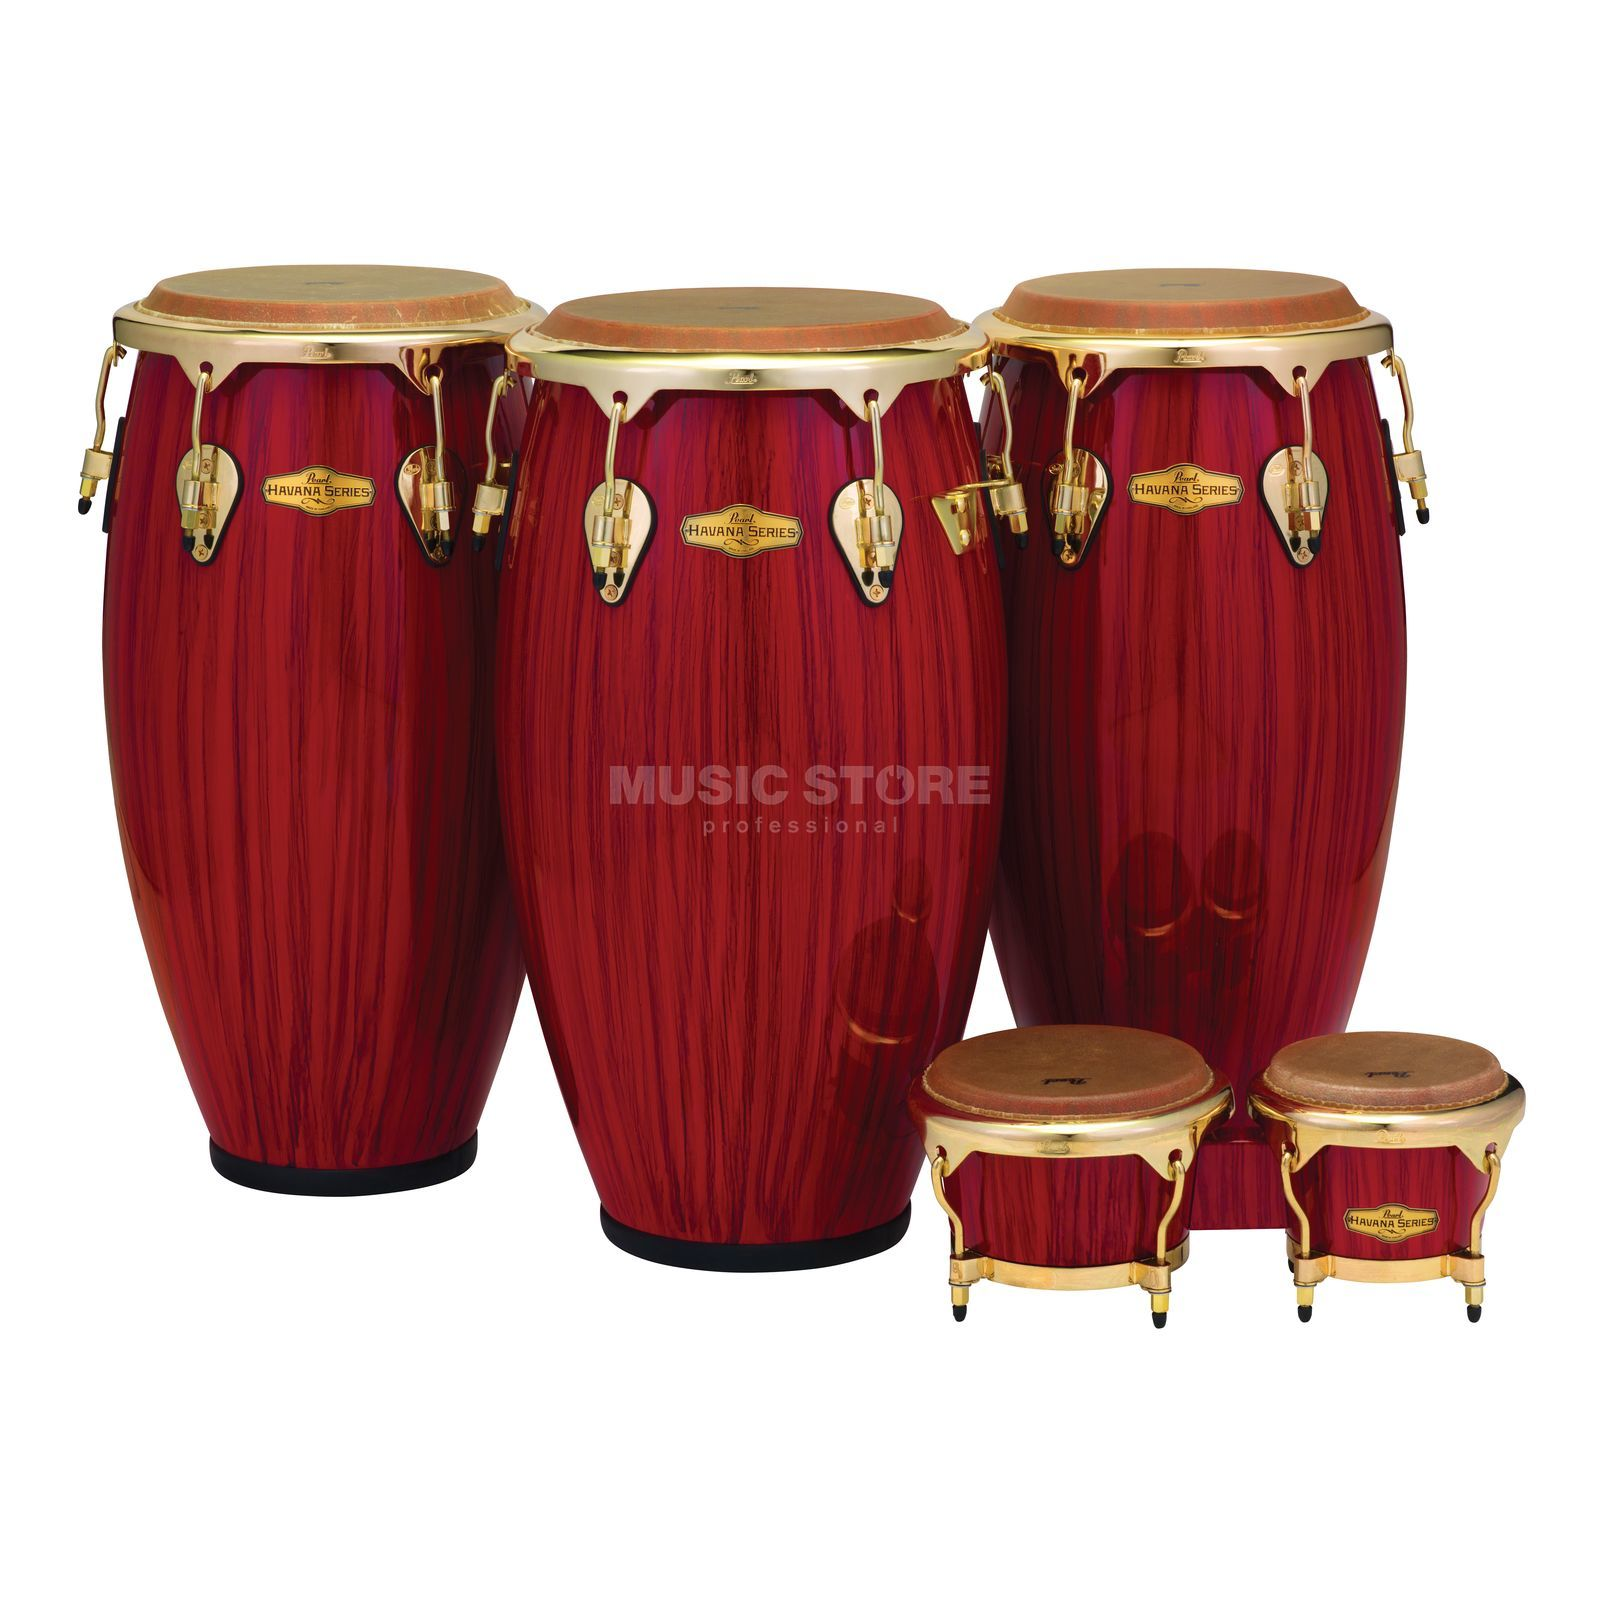 "Pearl Big Belly Havana Conga 12-1/2"", Red Tiger Stripe Изображение товара"